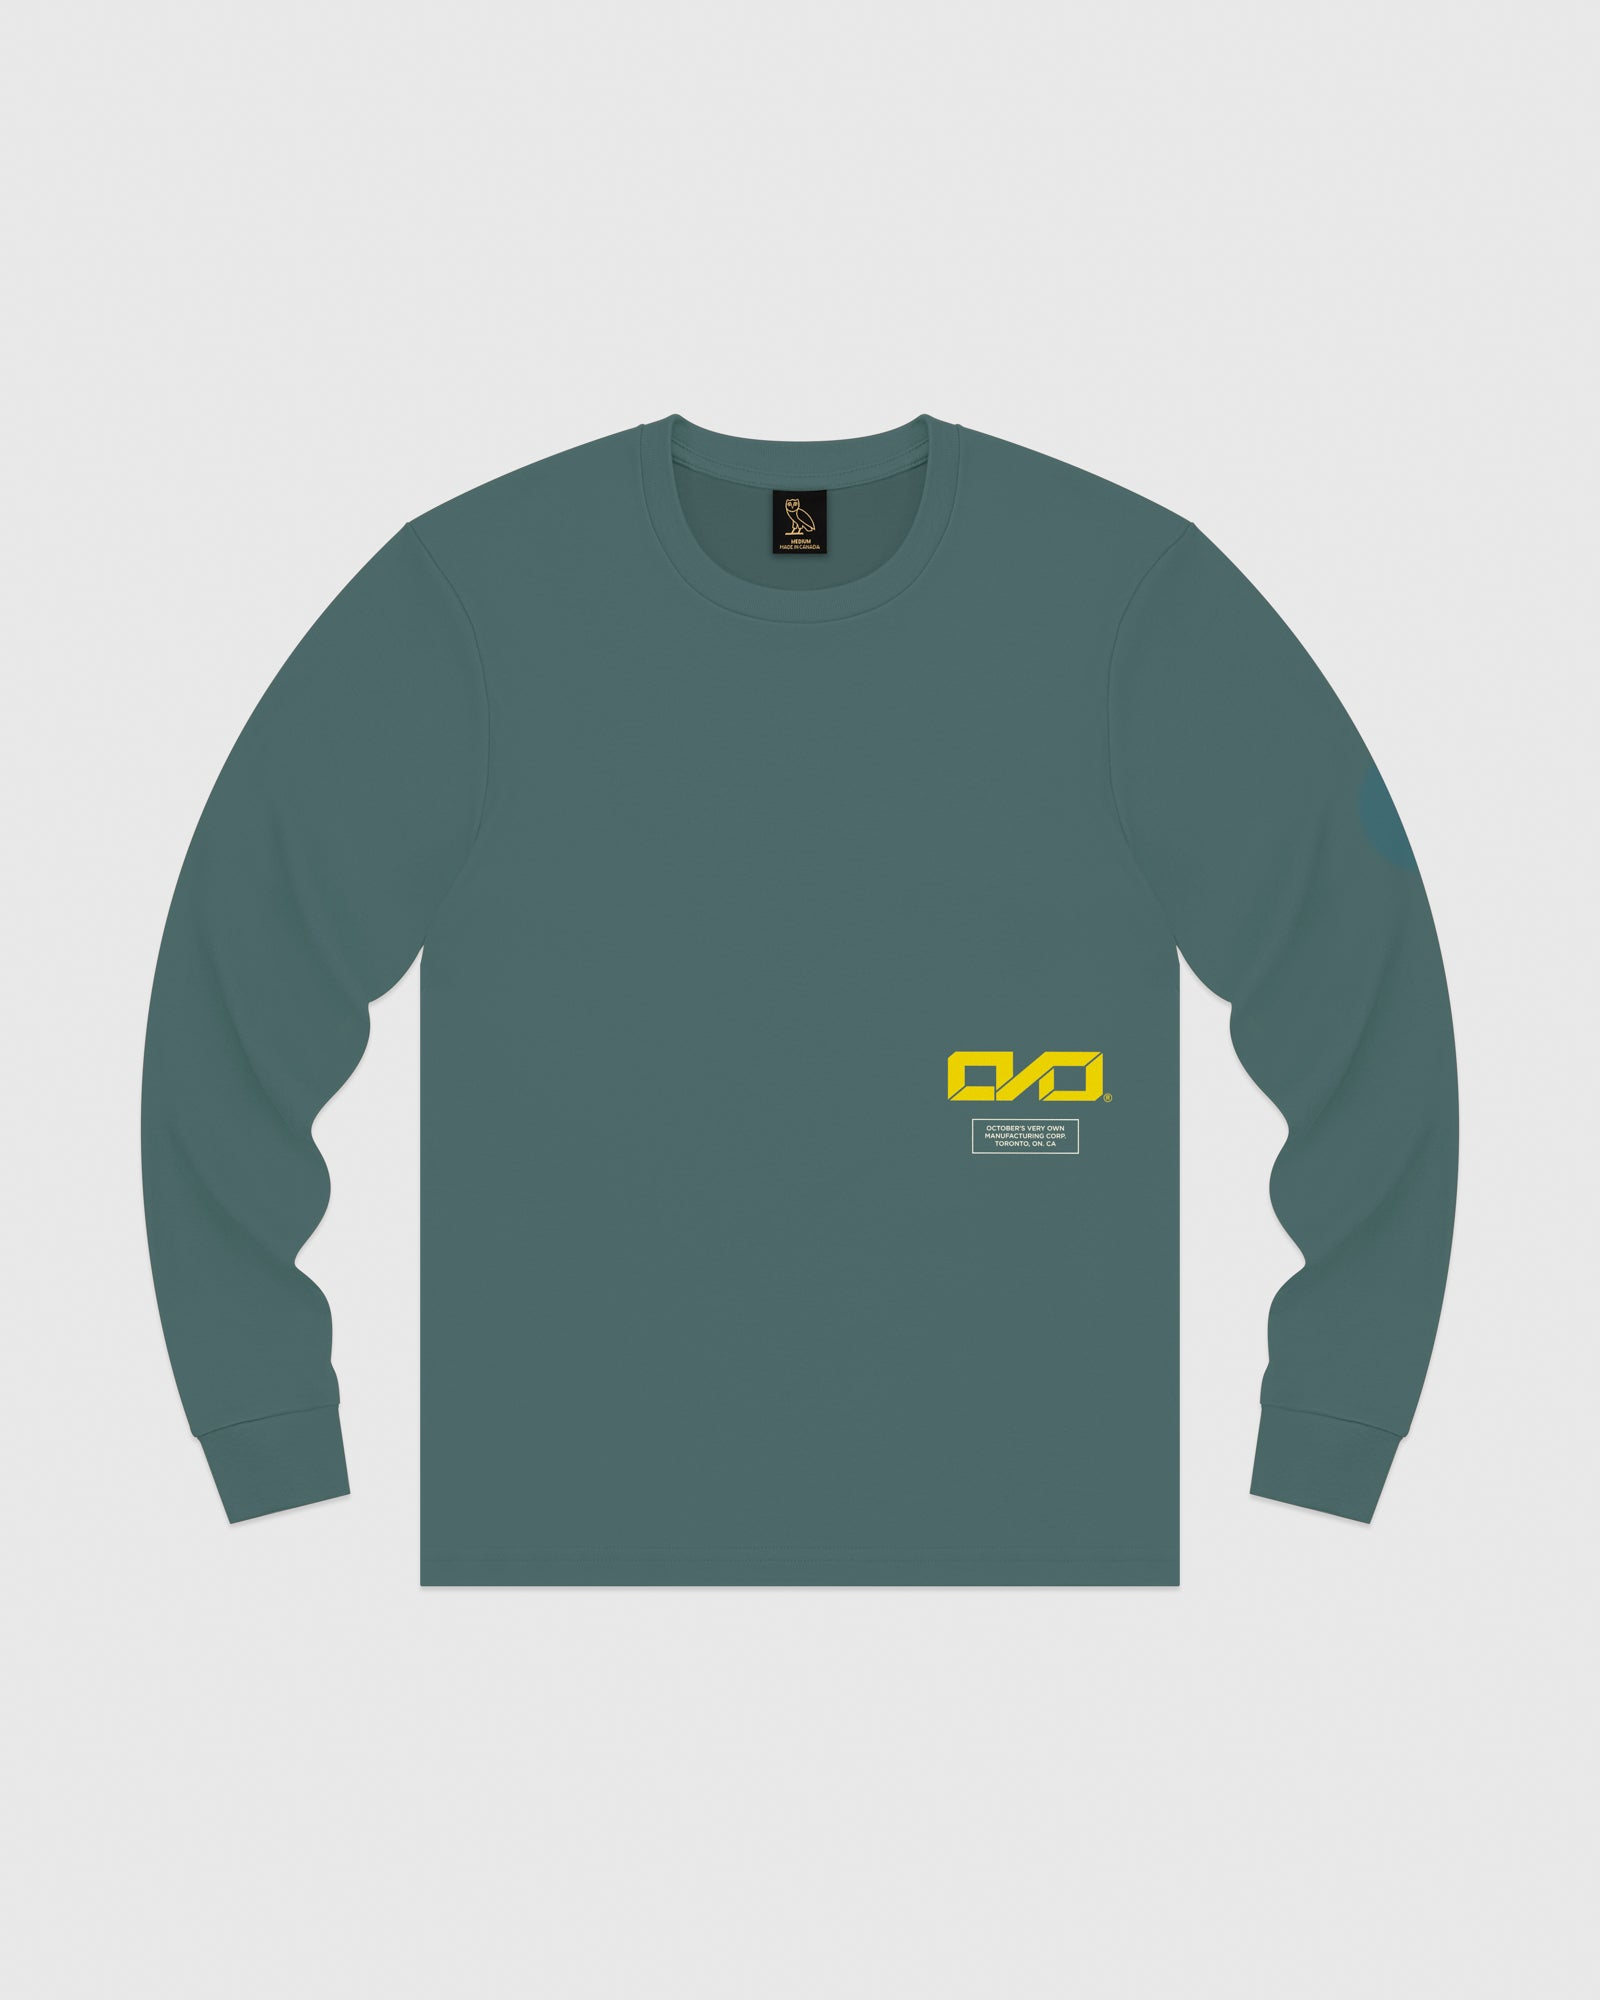 OVO INDUSTRIES LONGSLEEVE T-SHIRT - STEELE BLUE IMAGE #1